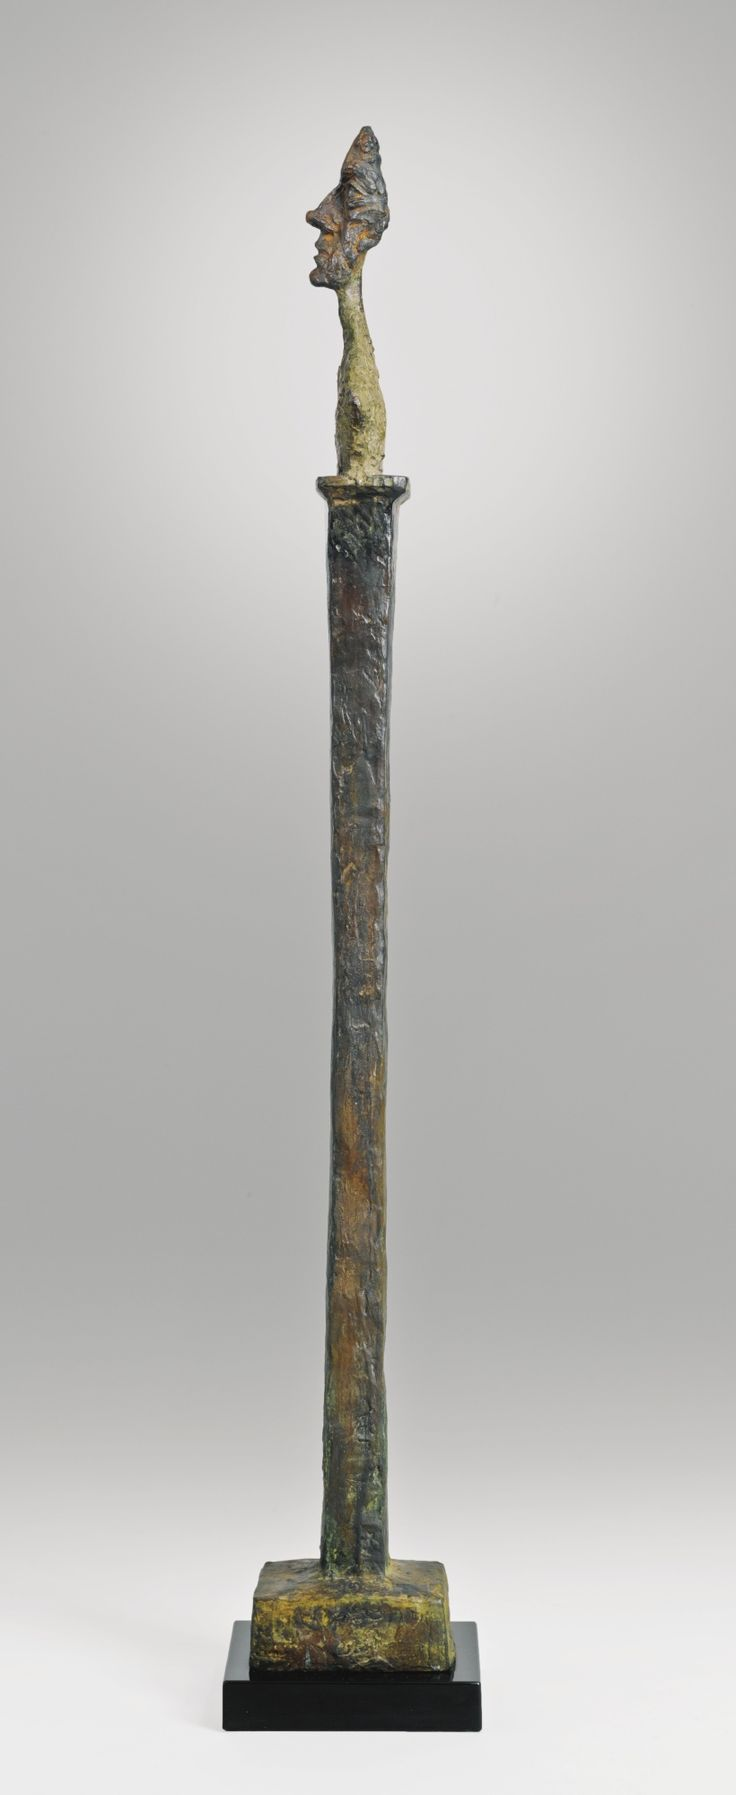 Alberto Giacometti 1901 - 1966. DIEGO SUR STÈLE II. Painted bronze Height: 165.7 cm. Conceived in 1957-58 and cast in 1958. Sotheby's, THE COLLECTION OF A. ALFRED TAUBMAN